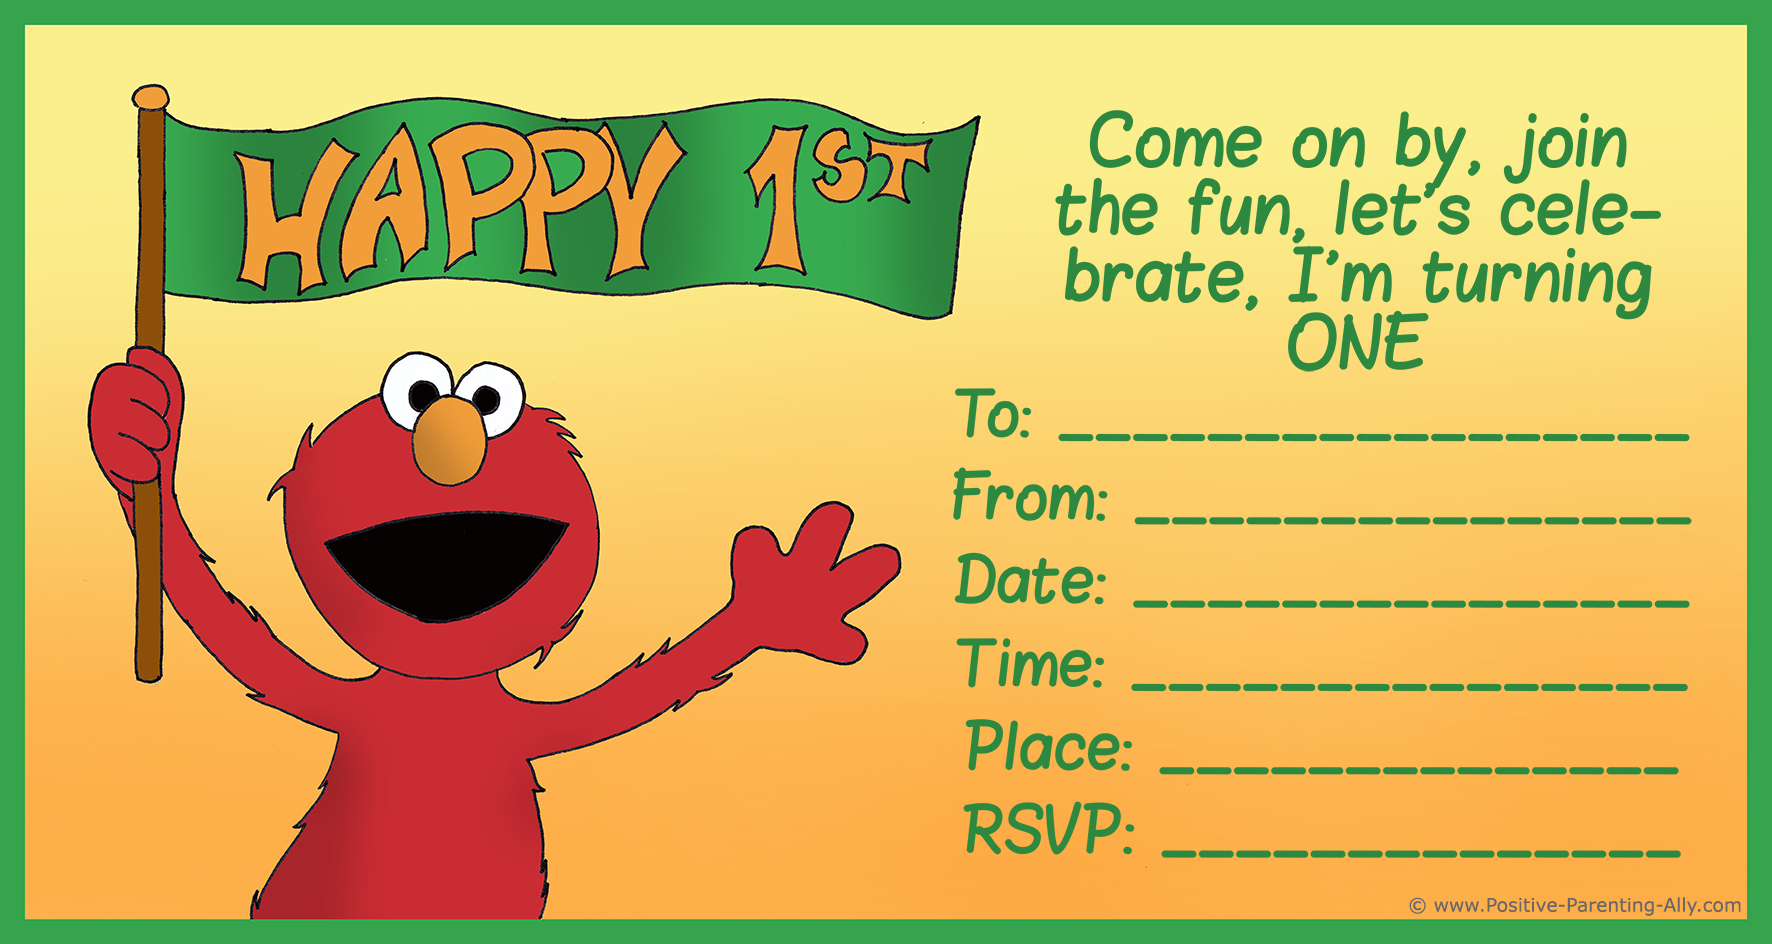 Elmo Sesame Street Birthday Invitations Print Your Own Party Supplies Feesten Speciale Gelegenheden